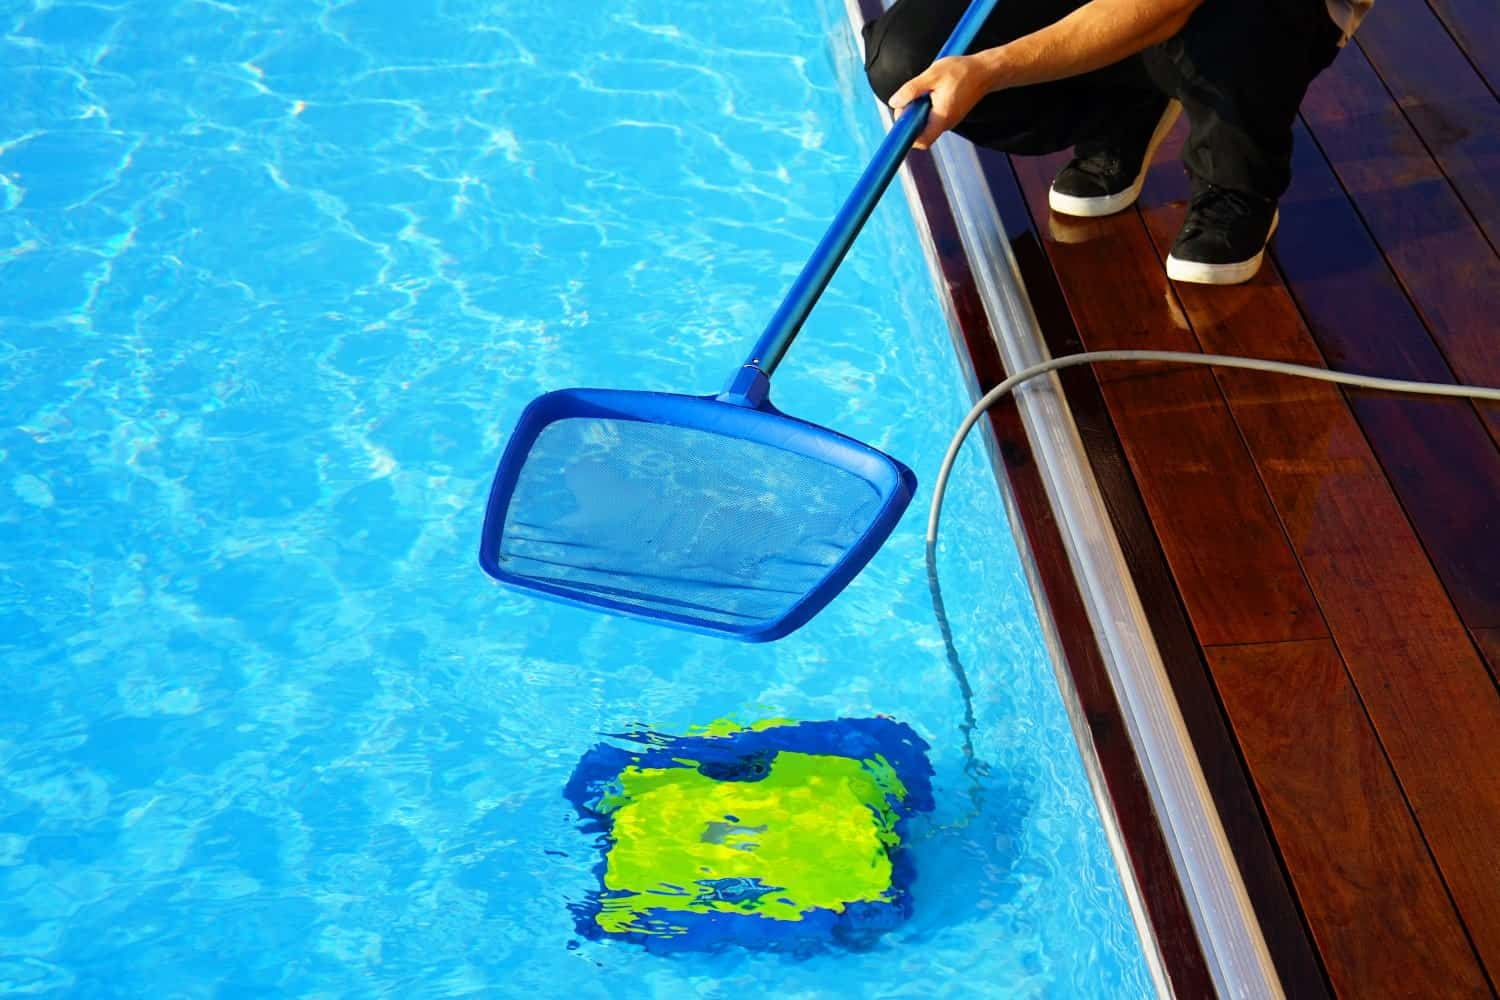 Using a net to remove some debris from the pool while a pool cleaner is underwater.